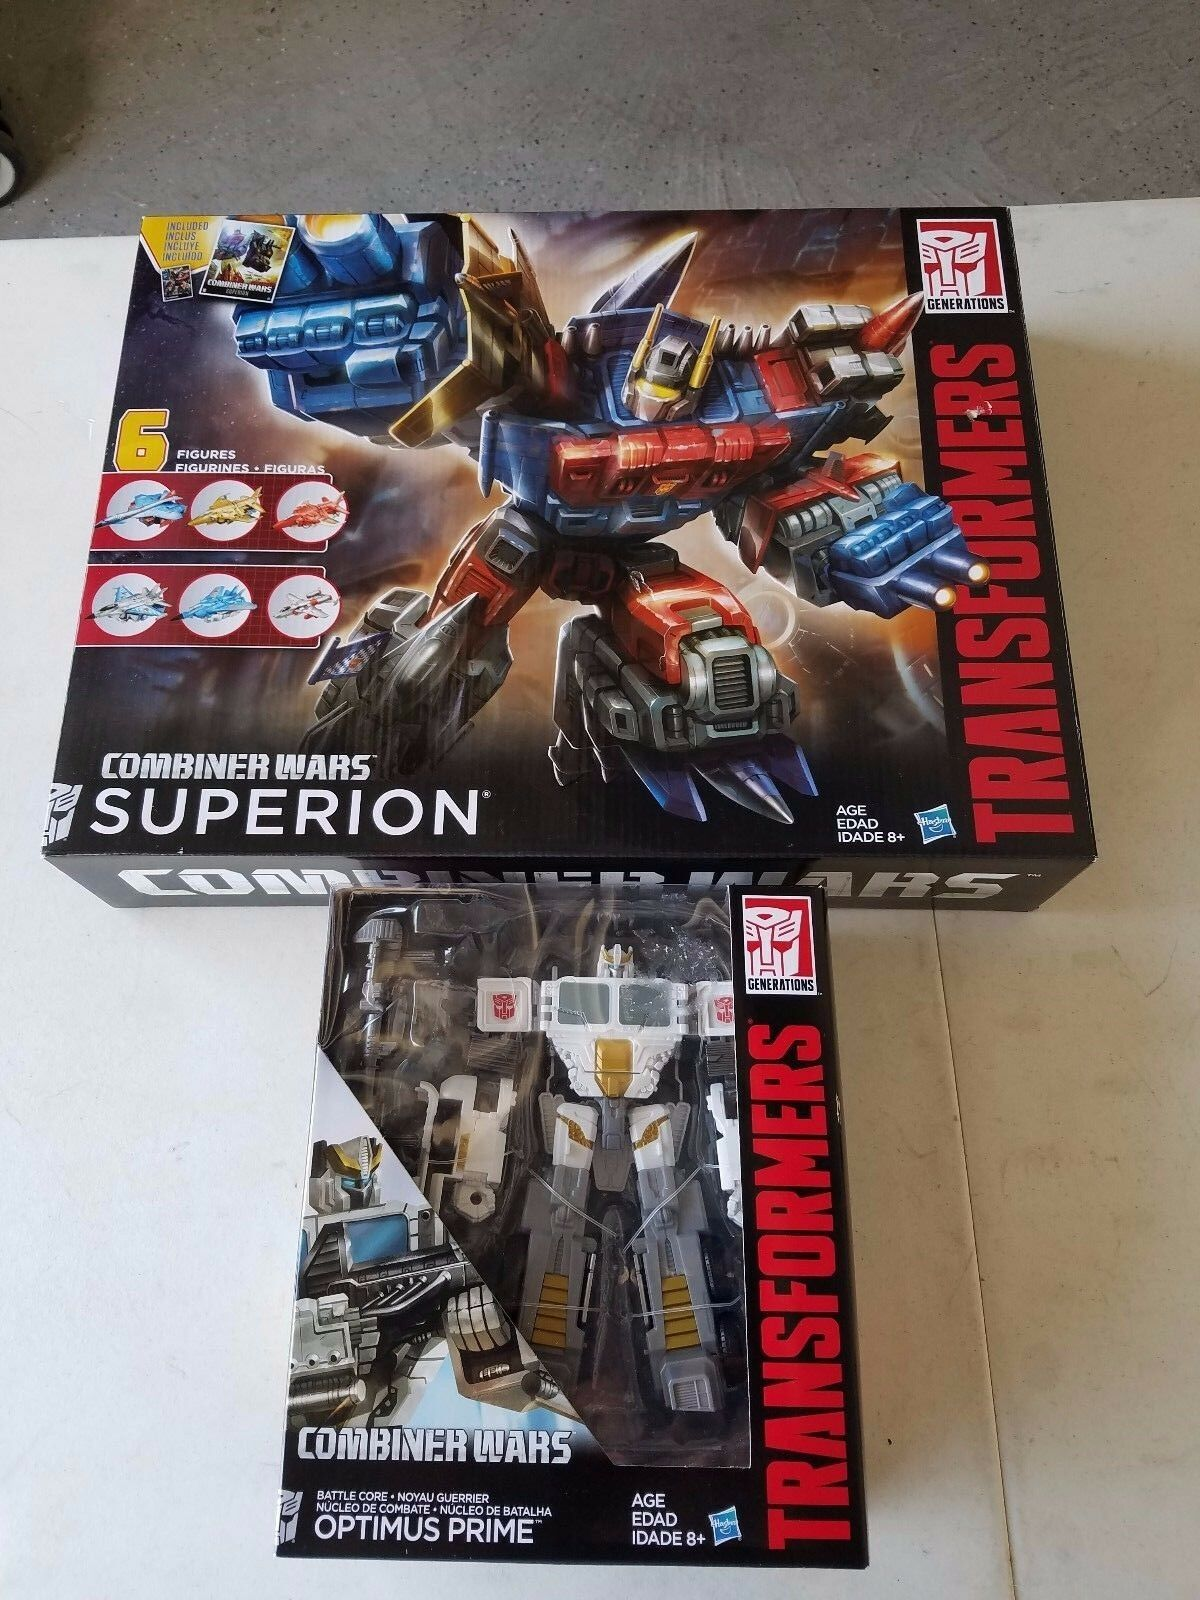 Transformers Generations Combiner Wars Voyager Class Battle Core Optimus Prime